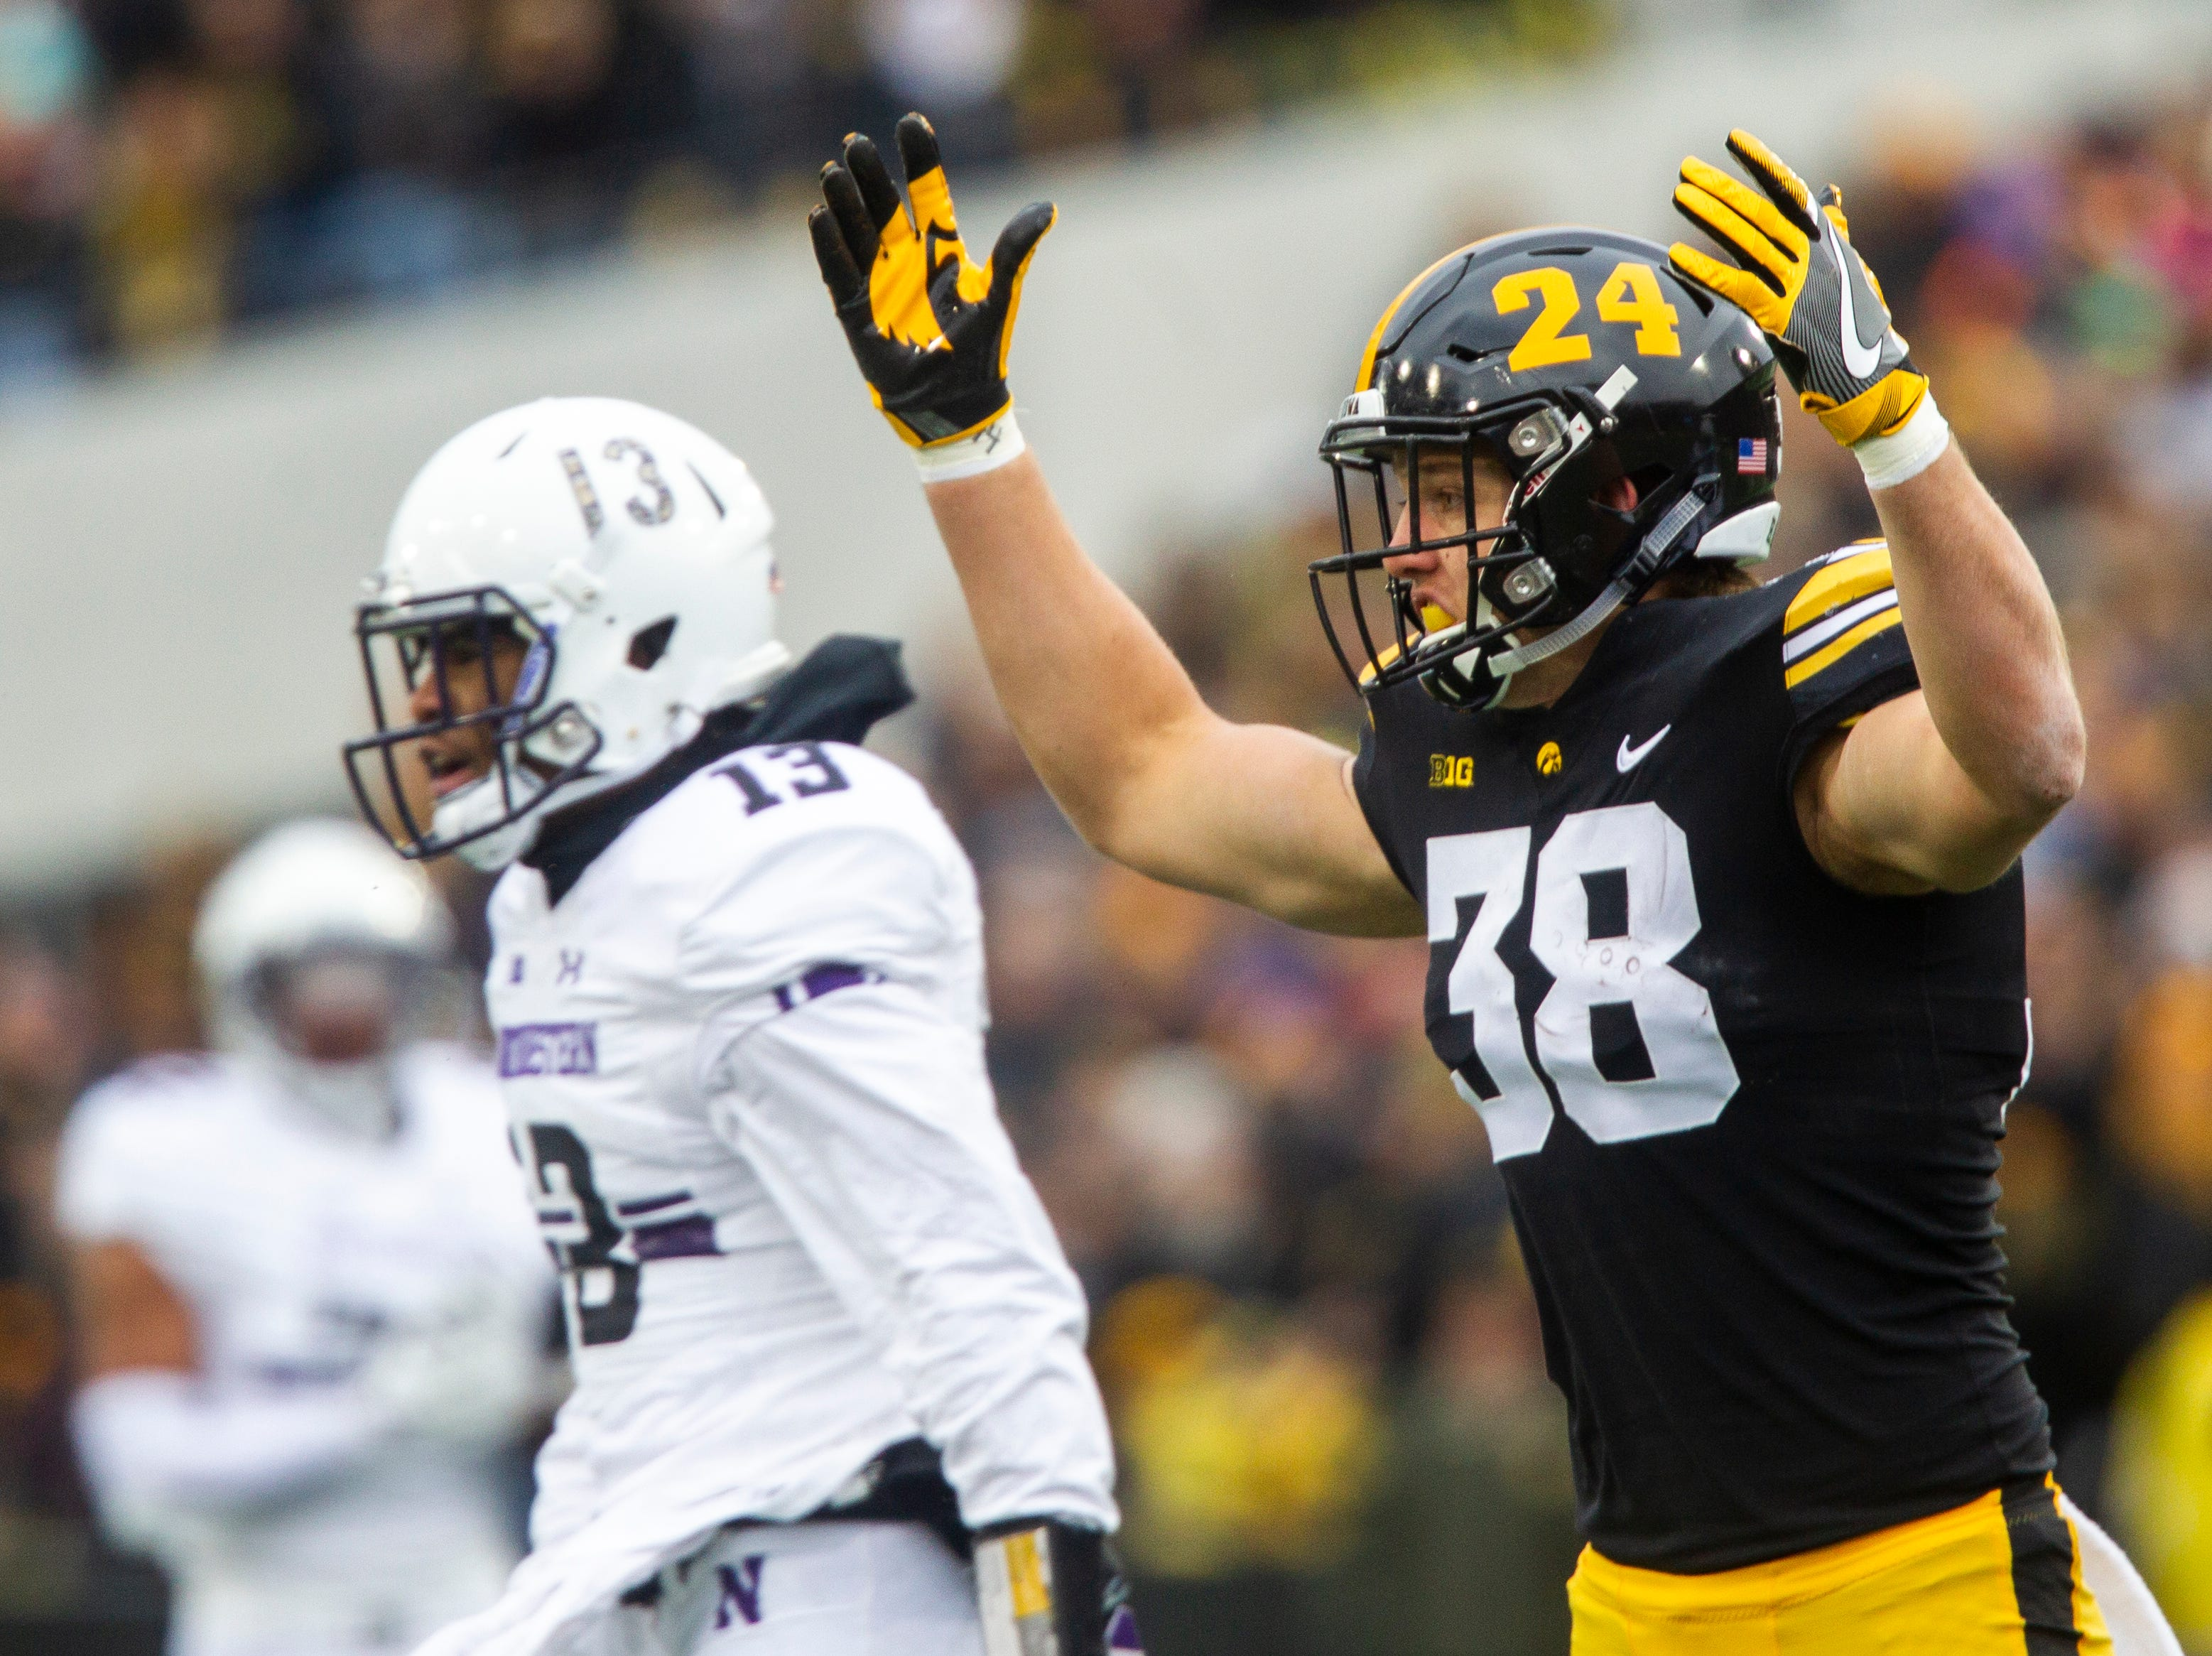 Iowa football: T.J. Hockenson, Amani Hooker headline 7 Hawkeyes on AP's all-Big Ten teams